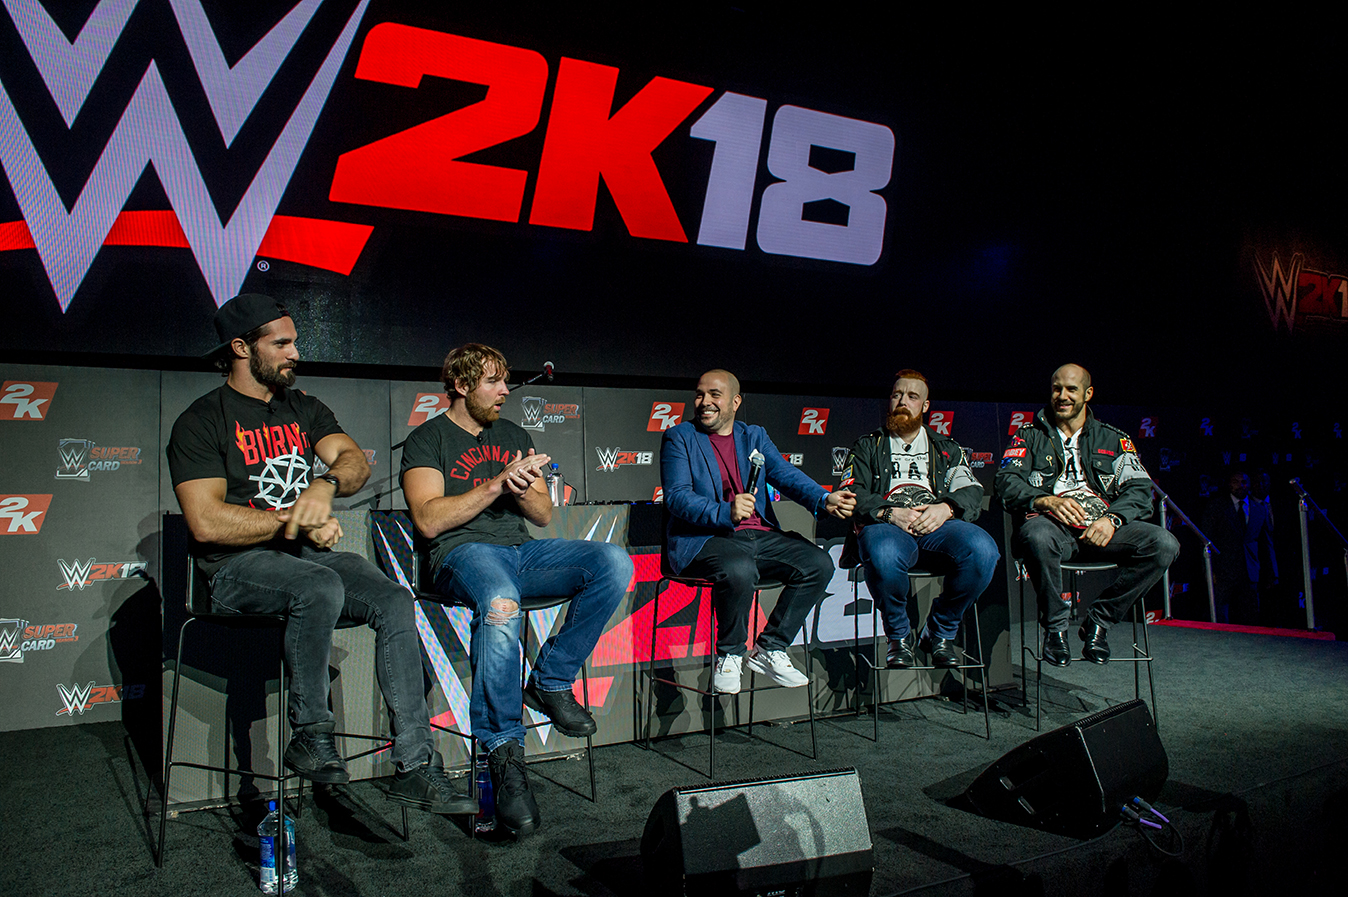 WWE2K18 VIDEO GAME LAUNCH